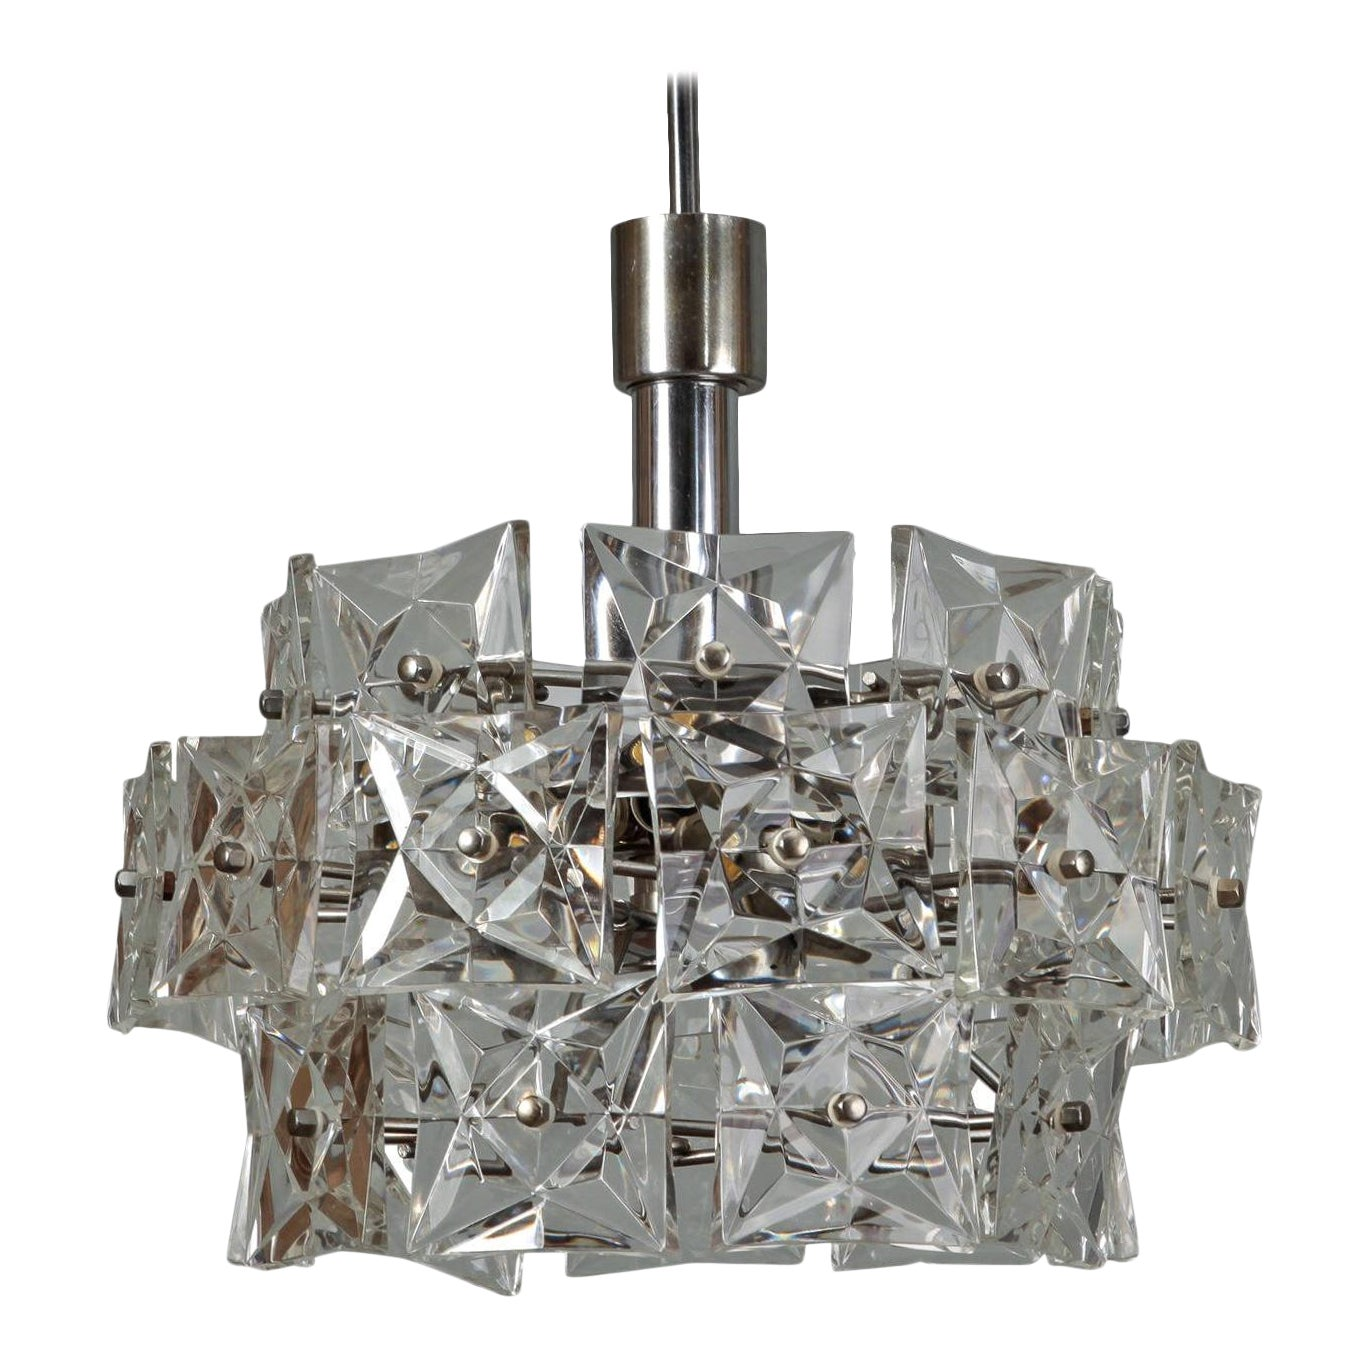 pendant stores brizzo of modern chrome lights cristallo round lighting picture crystal polished chandelier